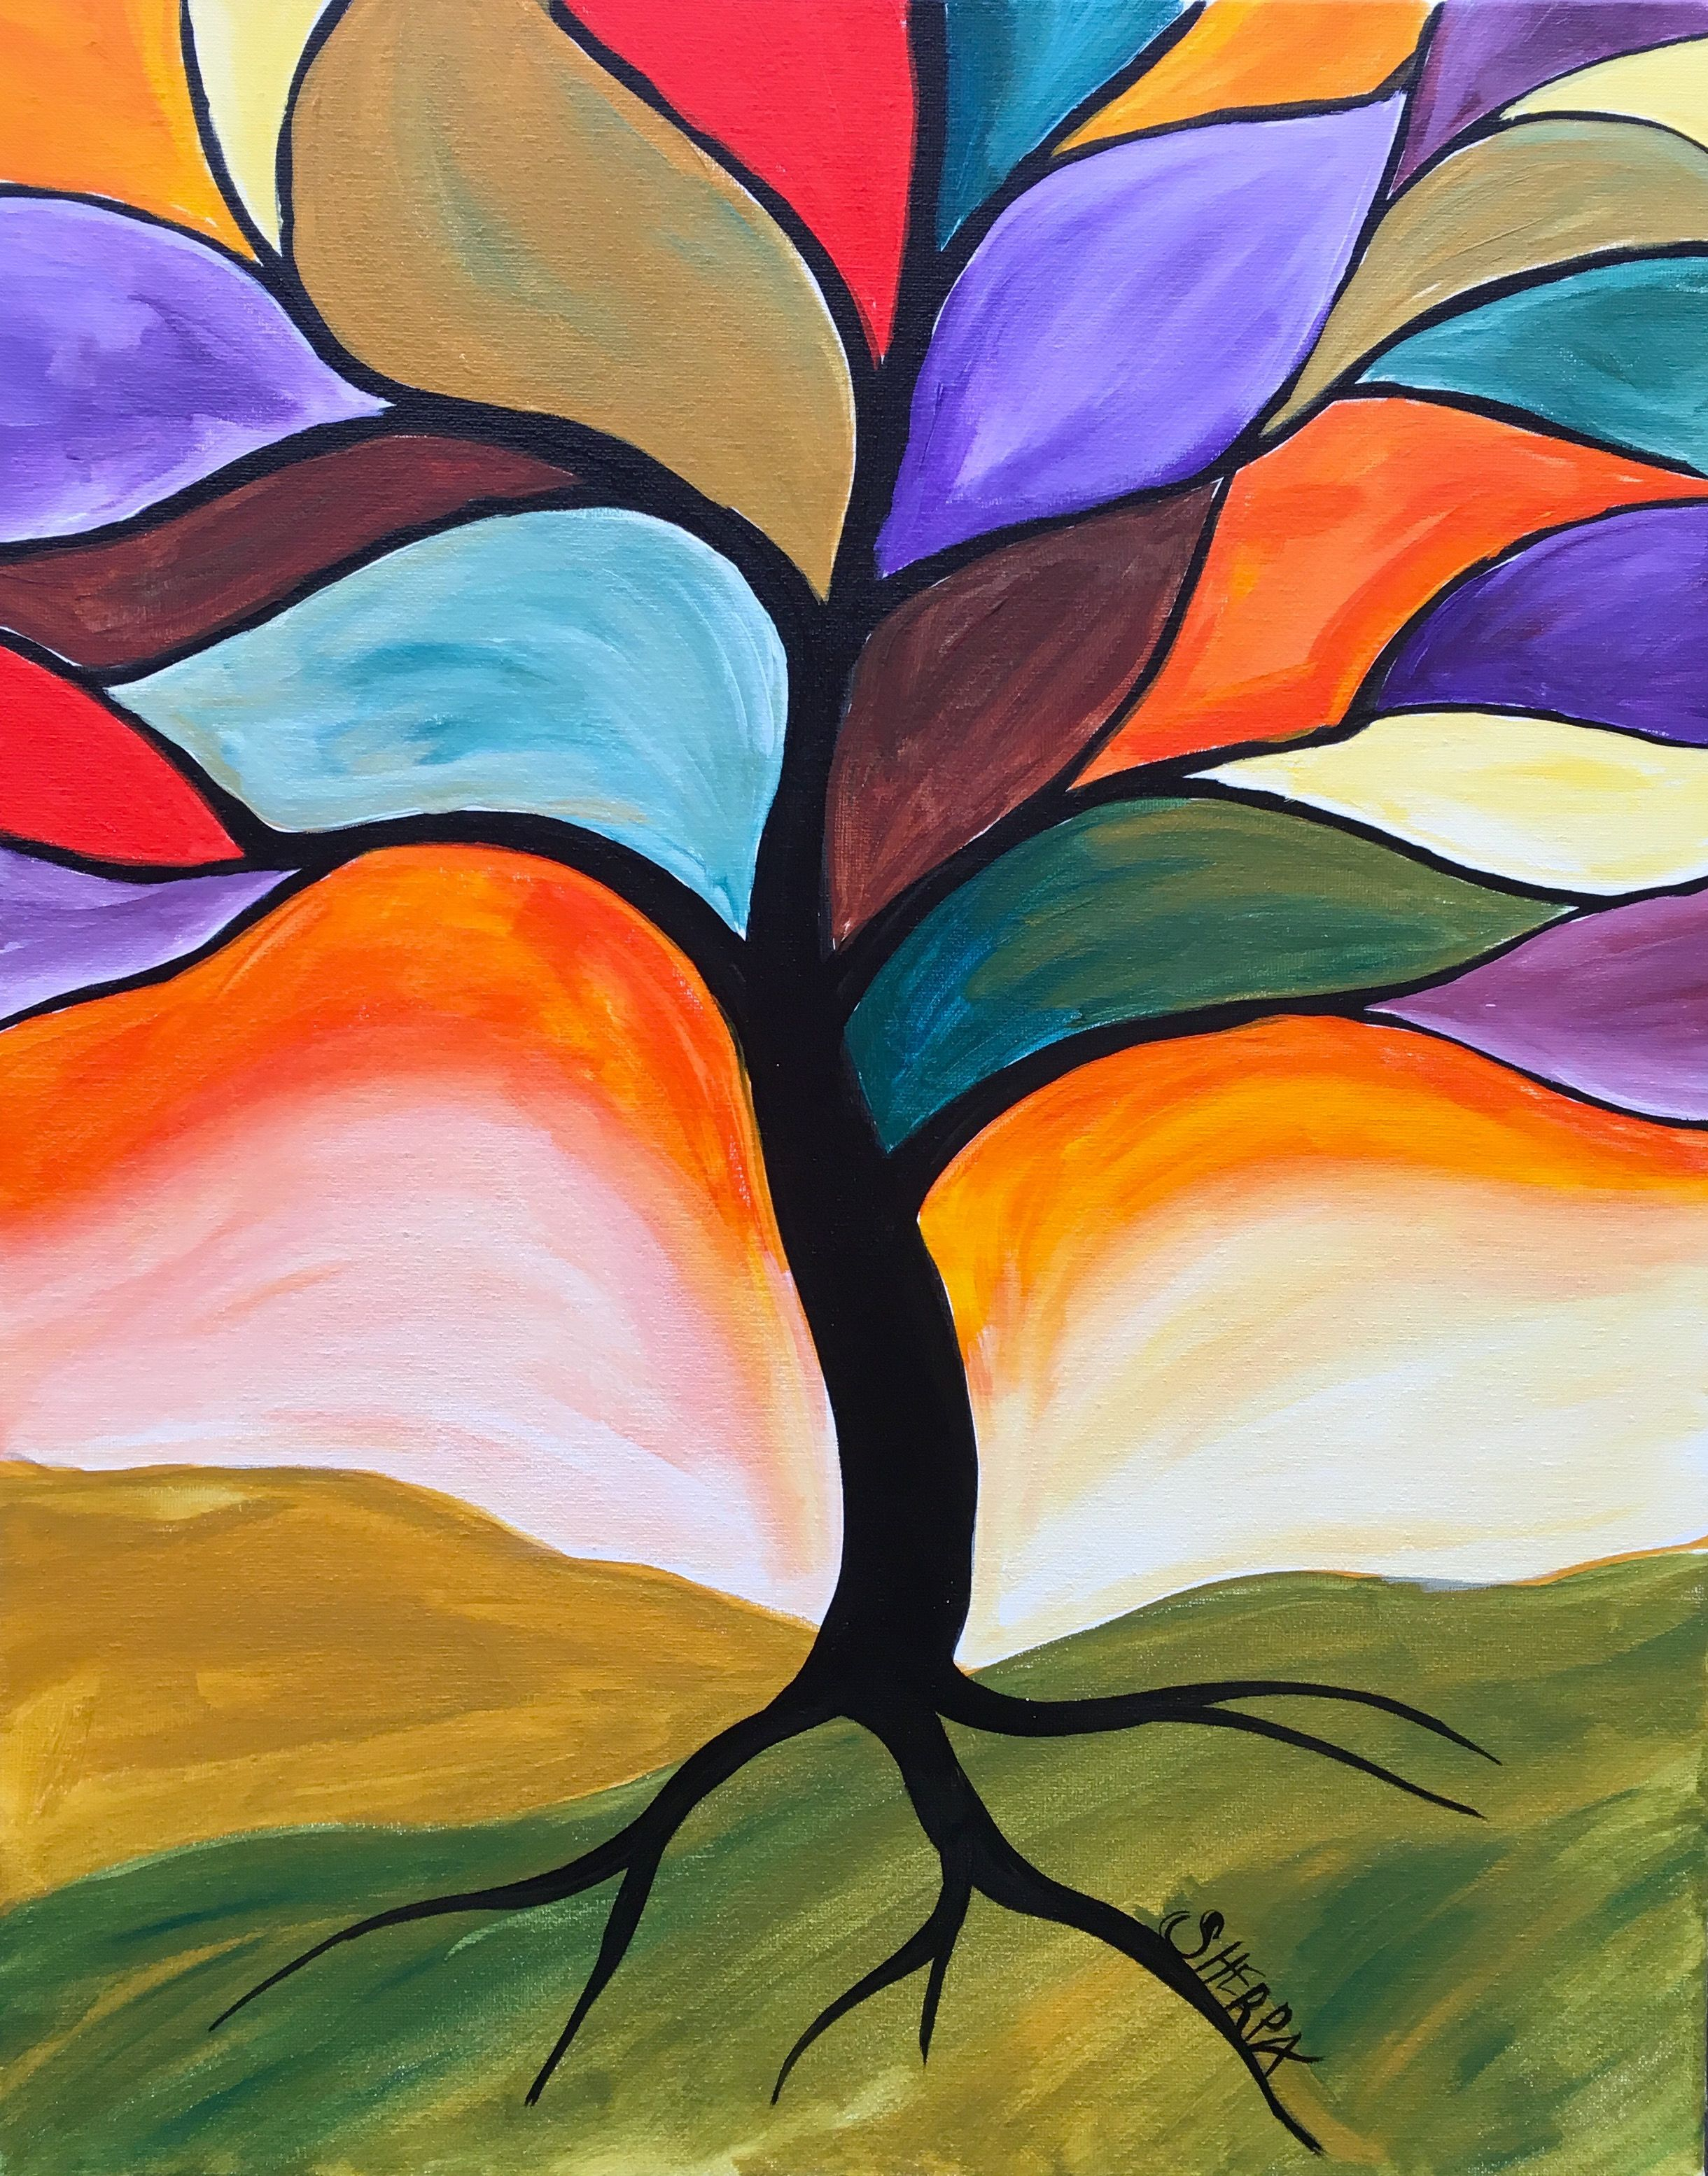 Fall Stained Glass Tree Easy Peasy Acrylic Painting Lesson For